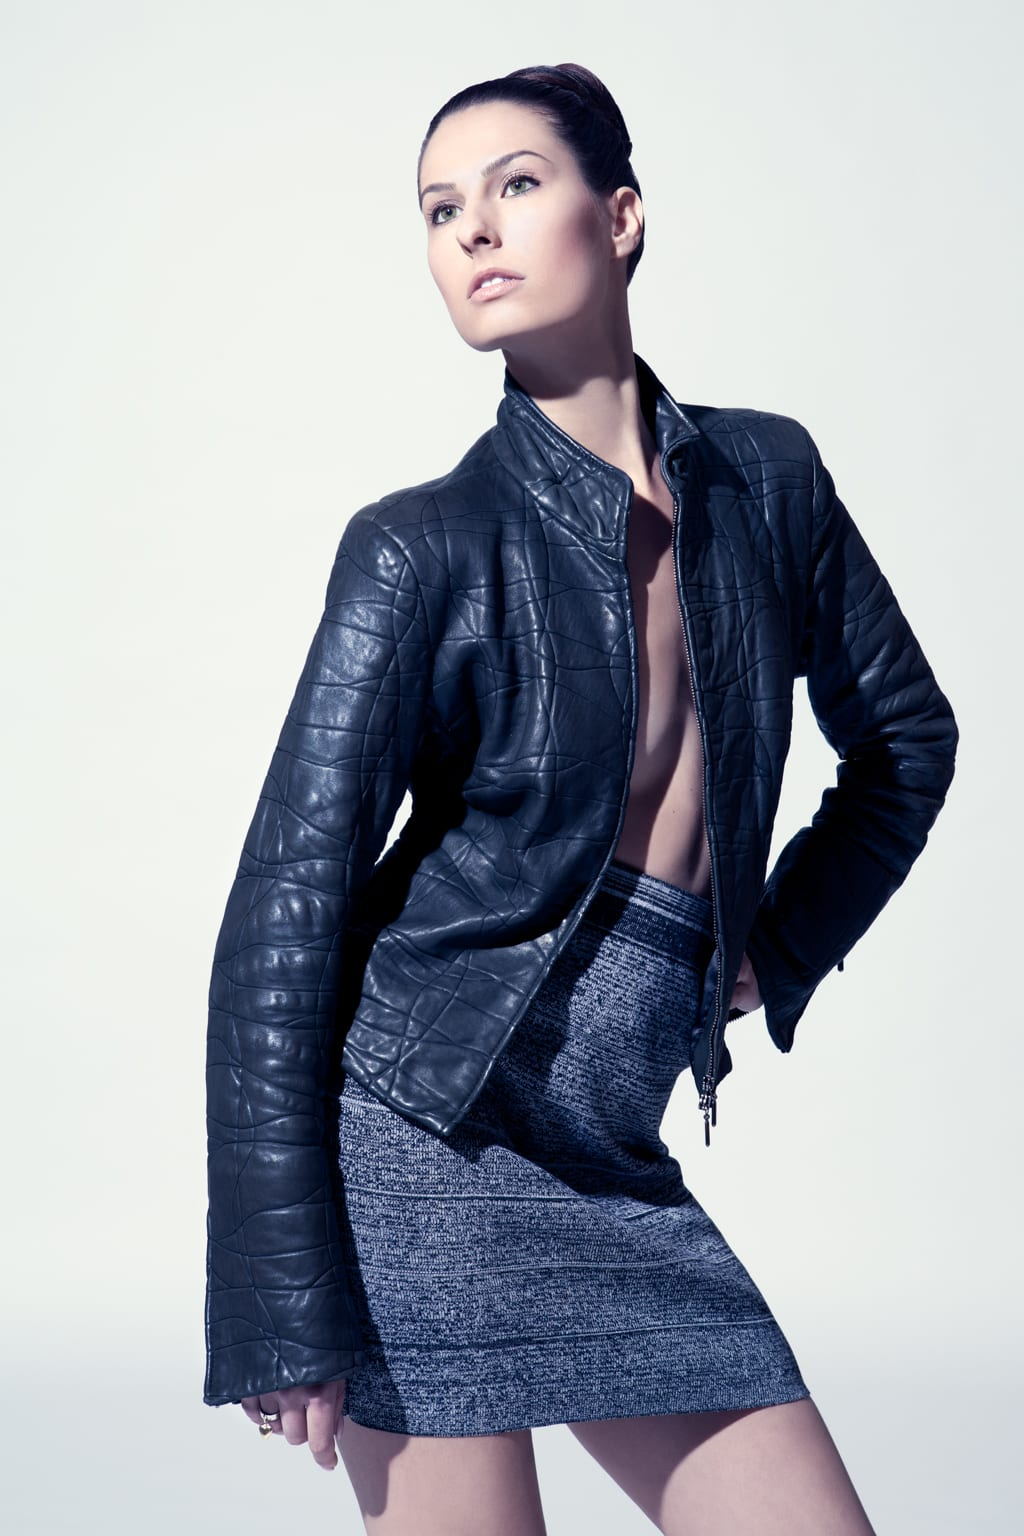 Leather-Jacket-Model-Zsuzsi-Pal-Photography